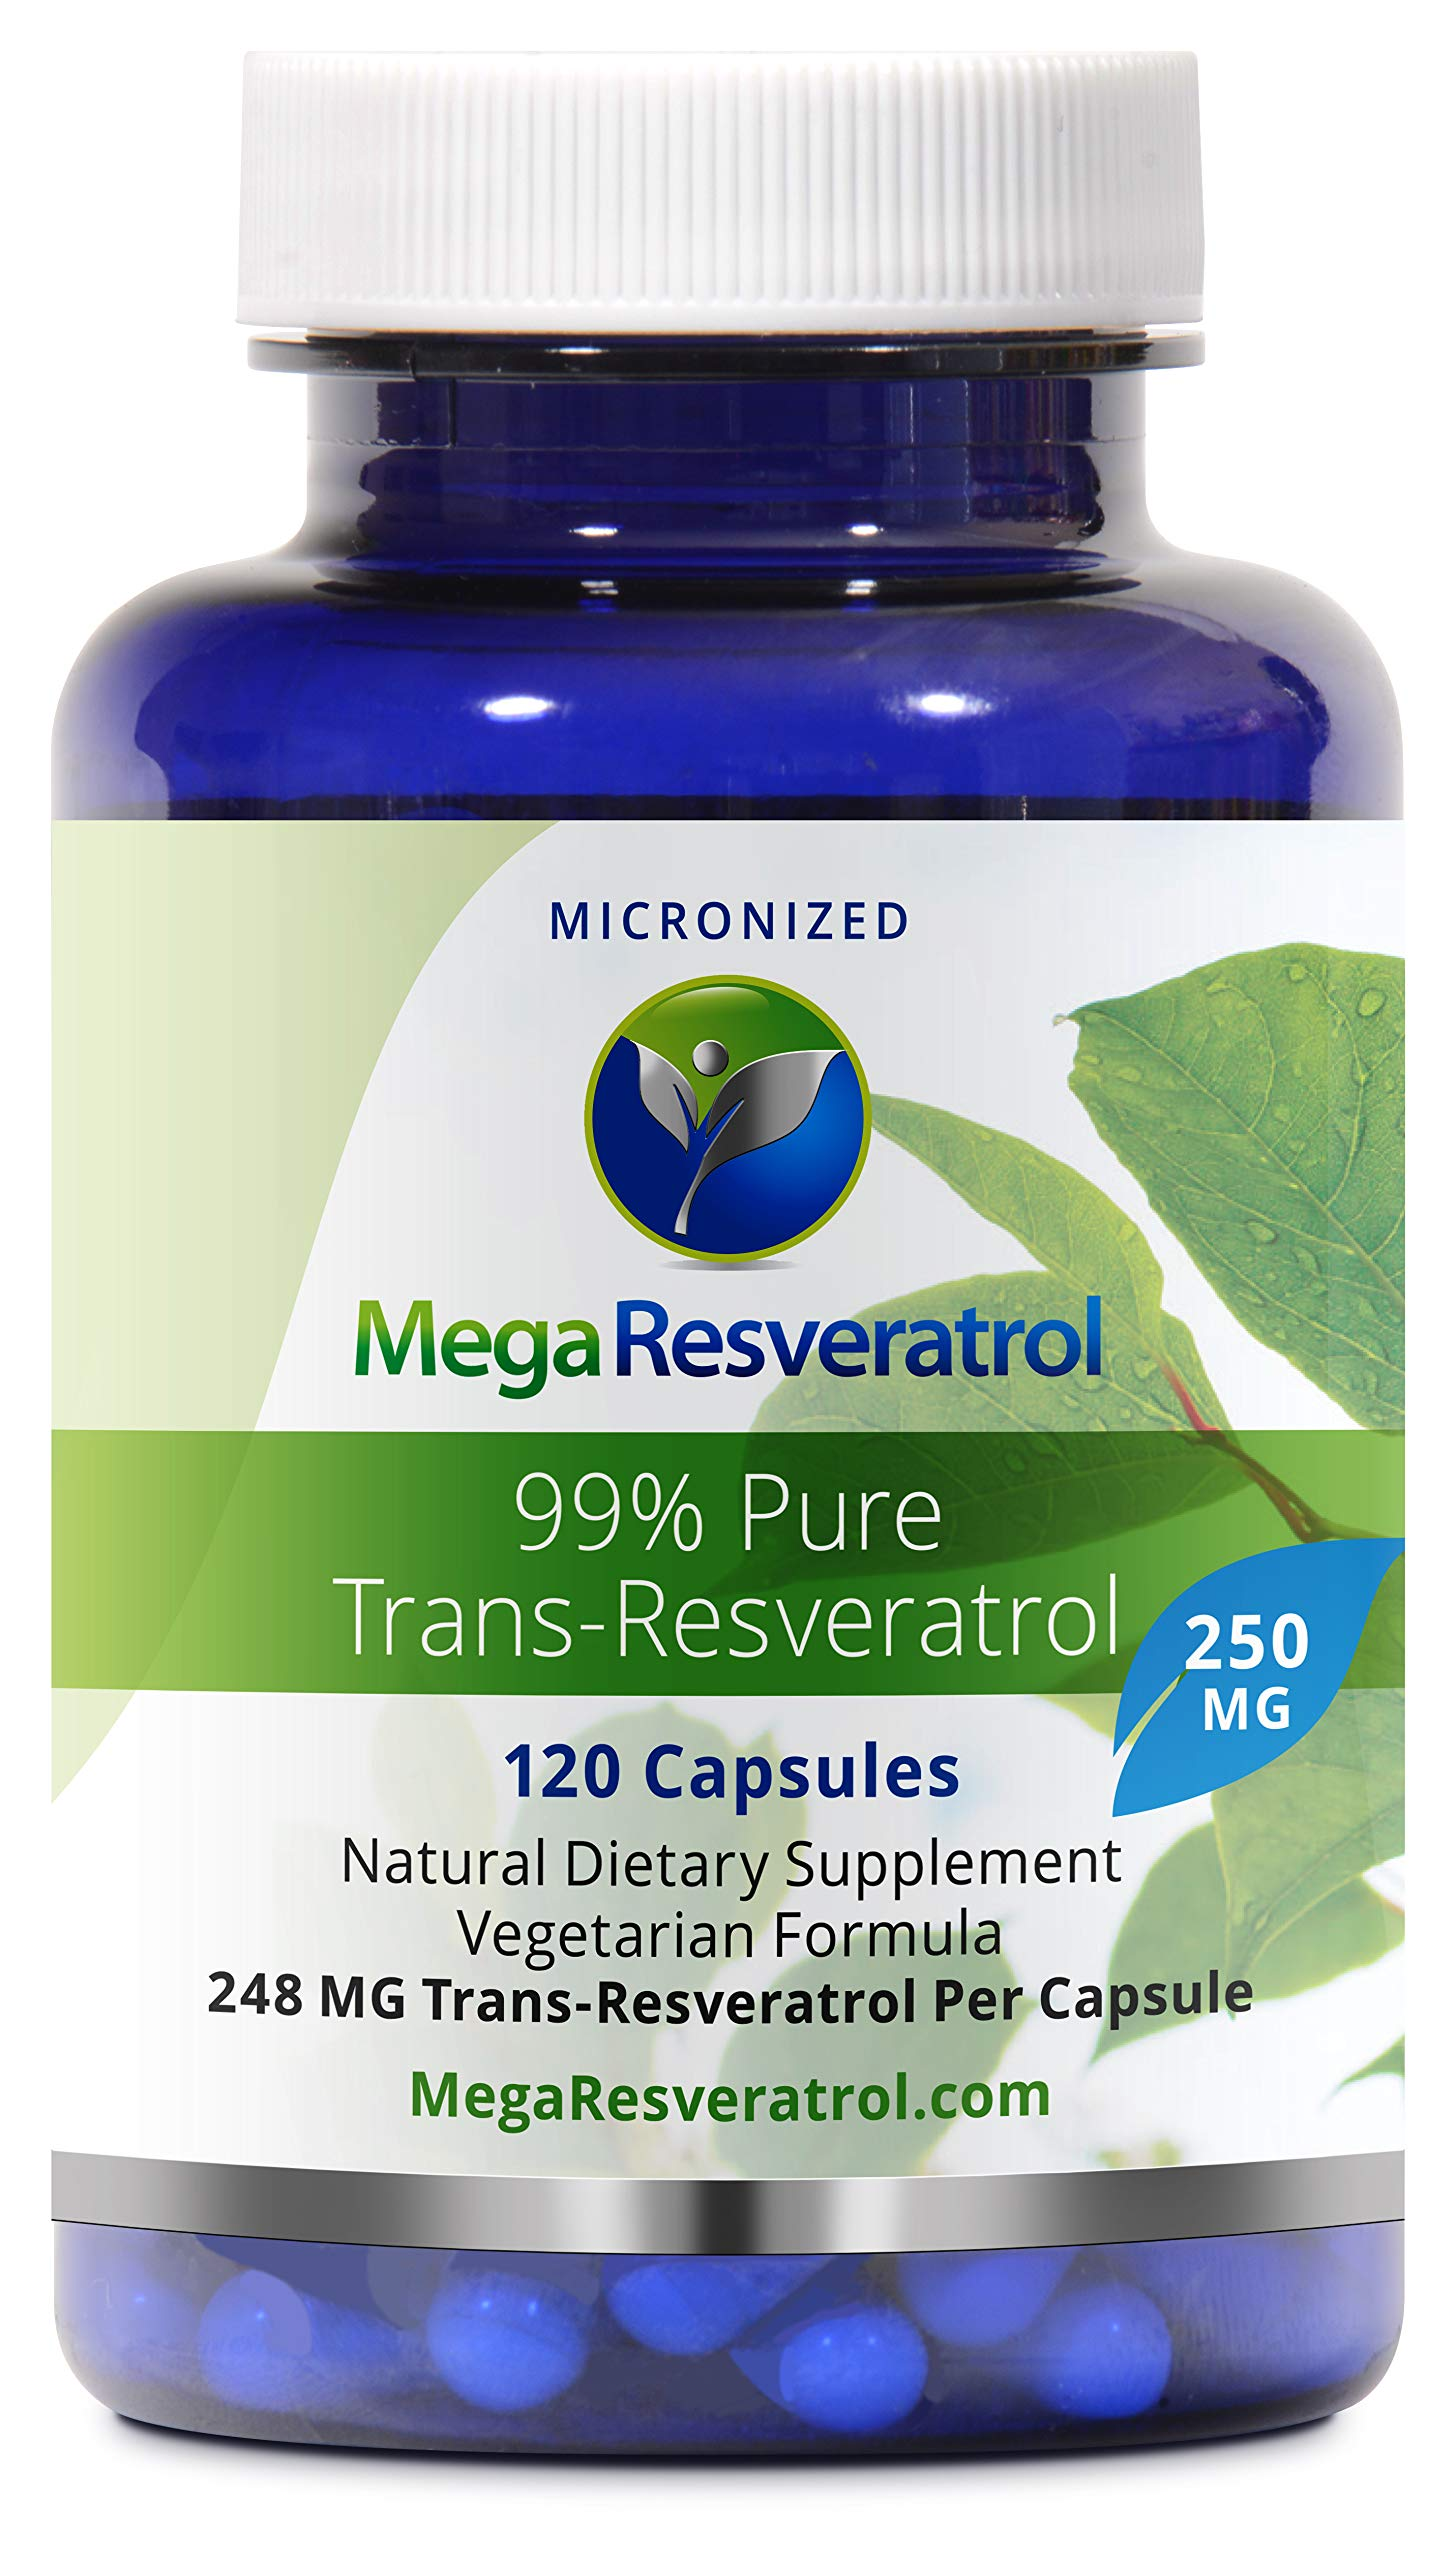 Mega Resveratrol, Pharmaceutical Grade, 99% Pure, Micronized Trans-Resveratrol, 120 Capsules, 250 mg per Capsule. Purity Certified. Absolutely no Toxic''Inactive Ingredients'' Added. by Mega Resveratrol